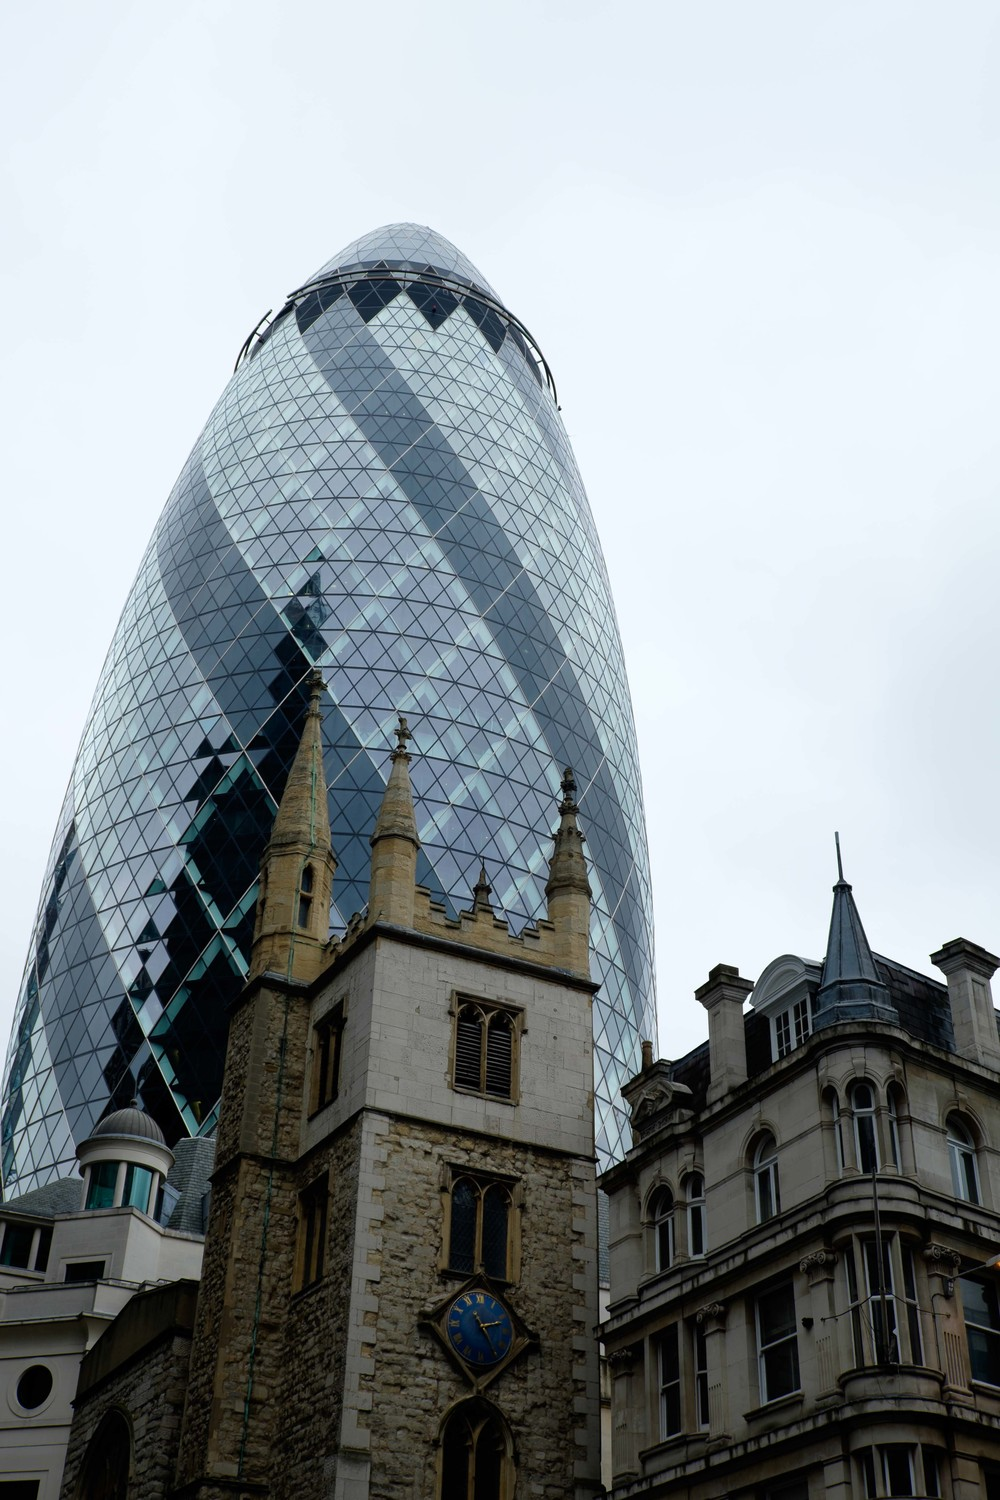 The Gherkin and St. Andrew Undershaft